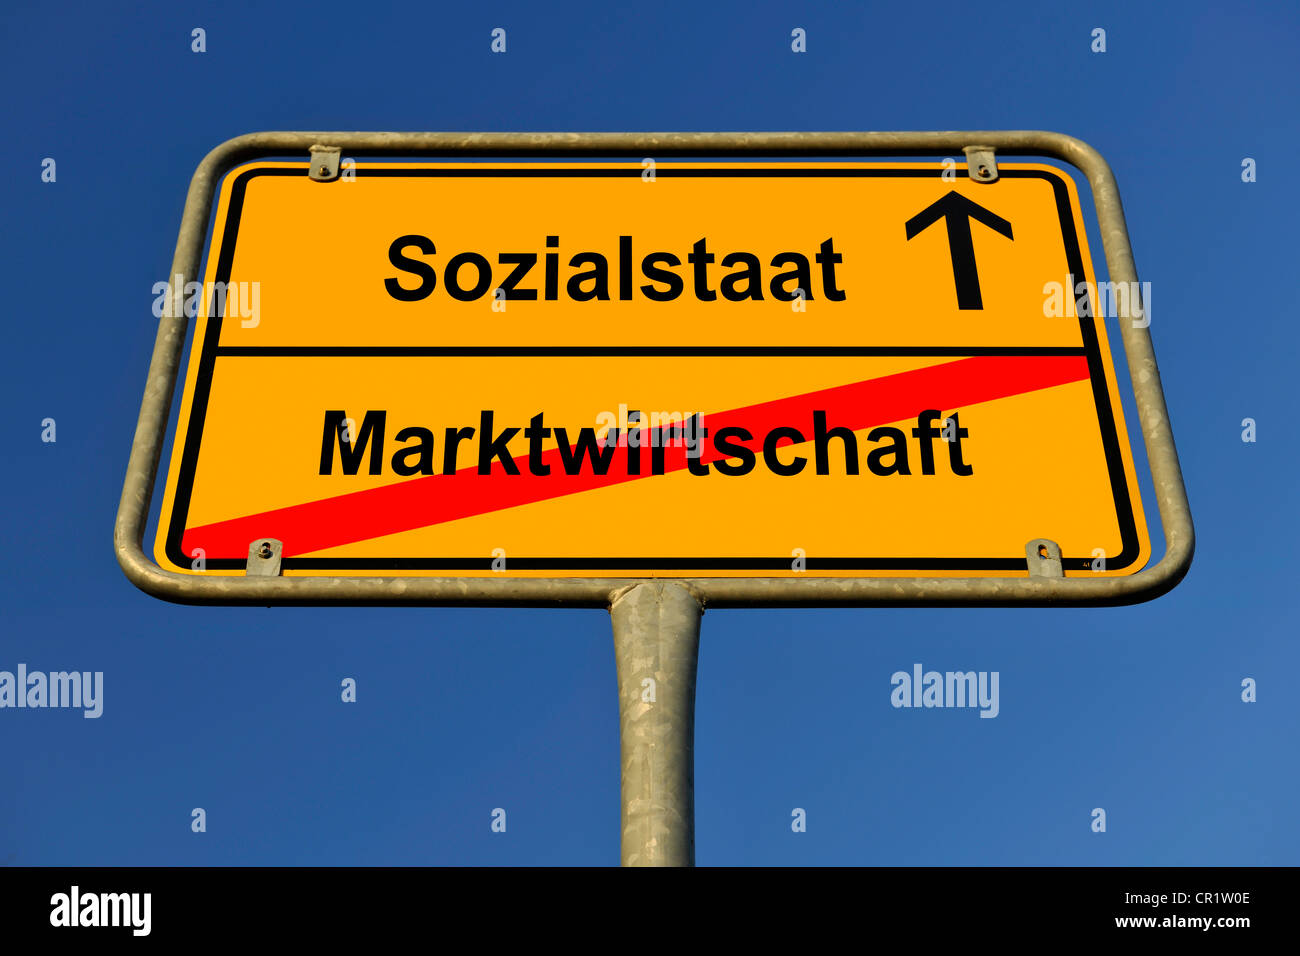 City limit sign, symbolic image for the way from a Marktwirtschaft to a Sozialstaat, German for going from a market - Stock Image